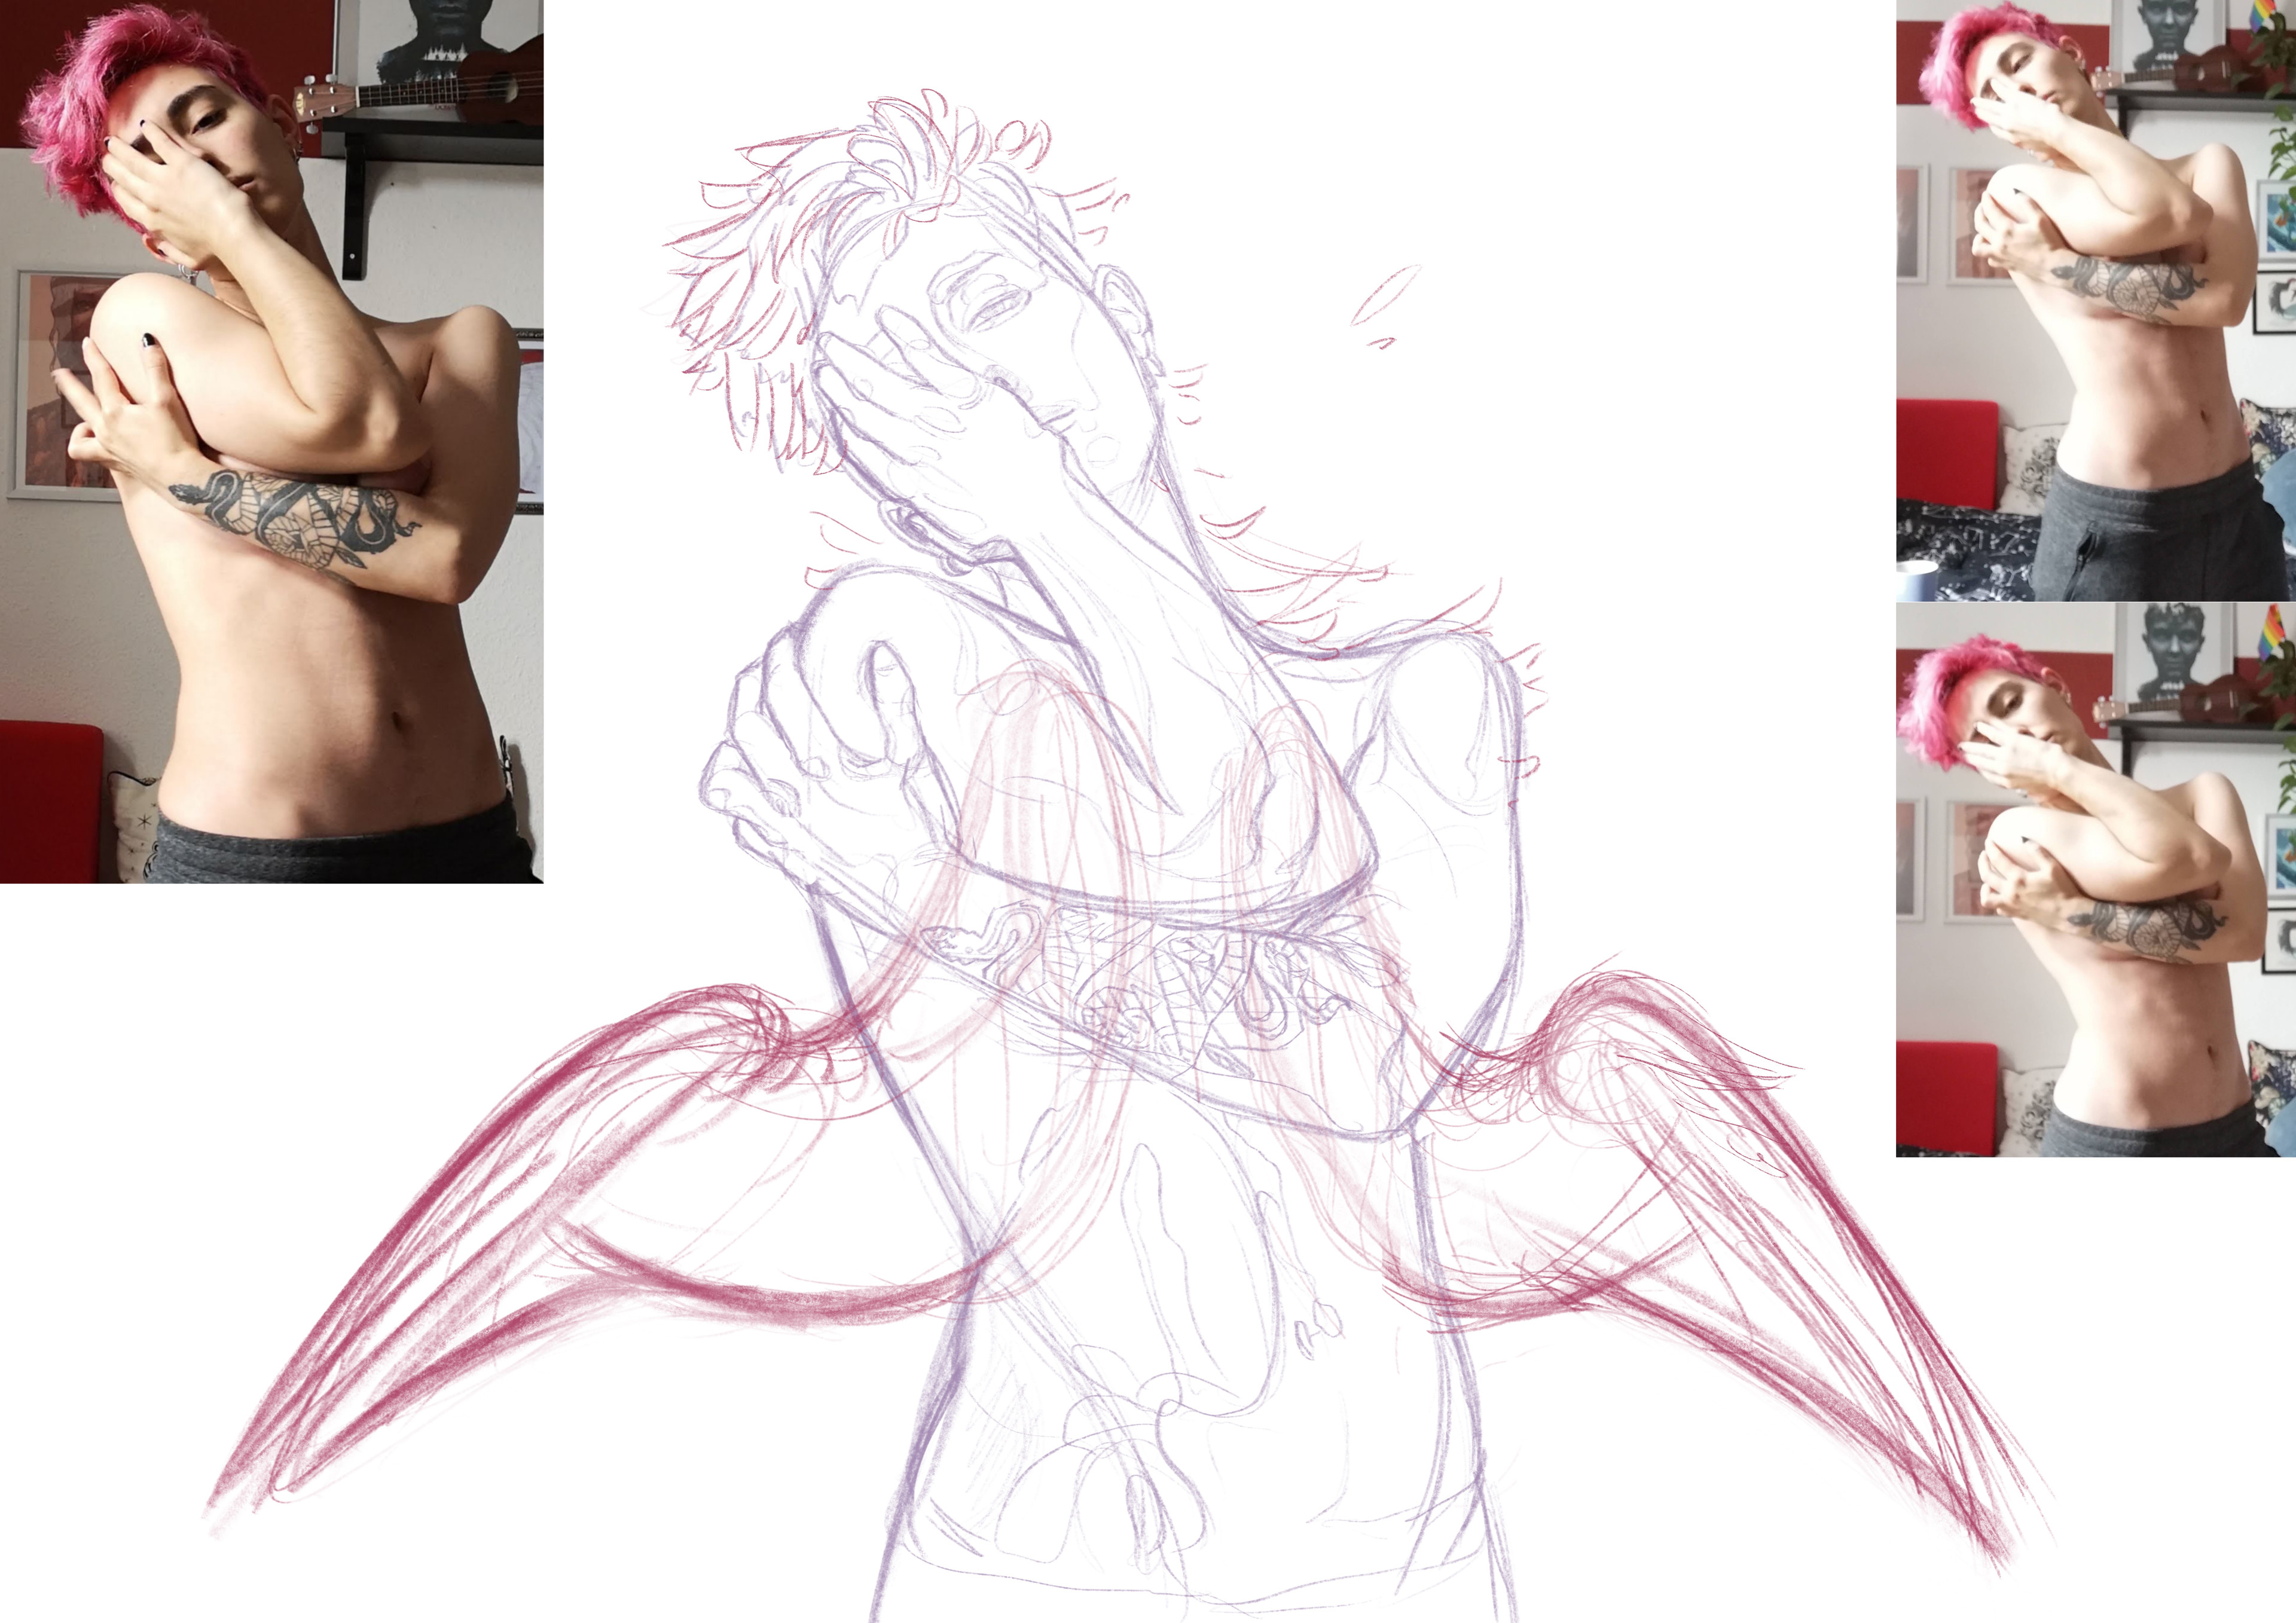 Sketch and reference images used for the final piece.